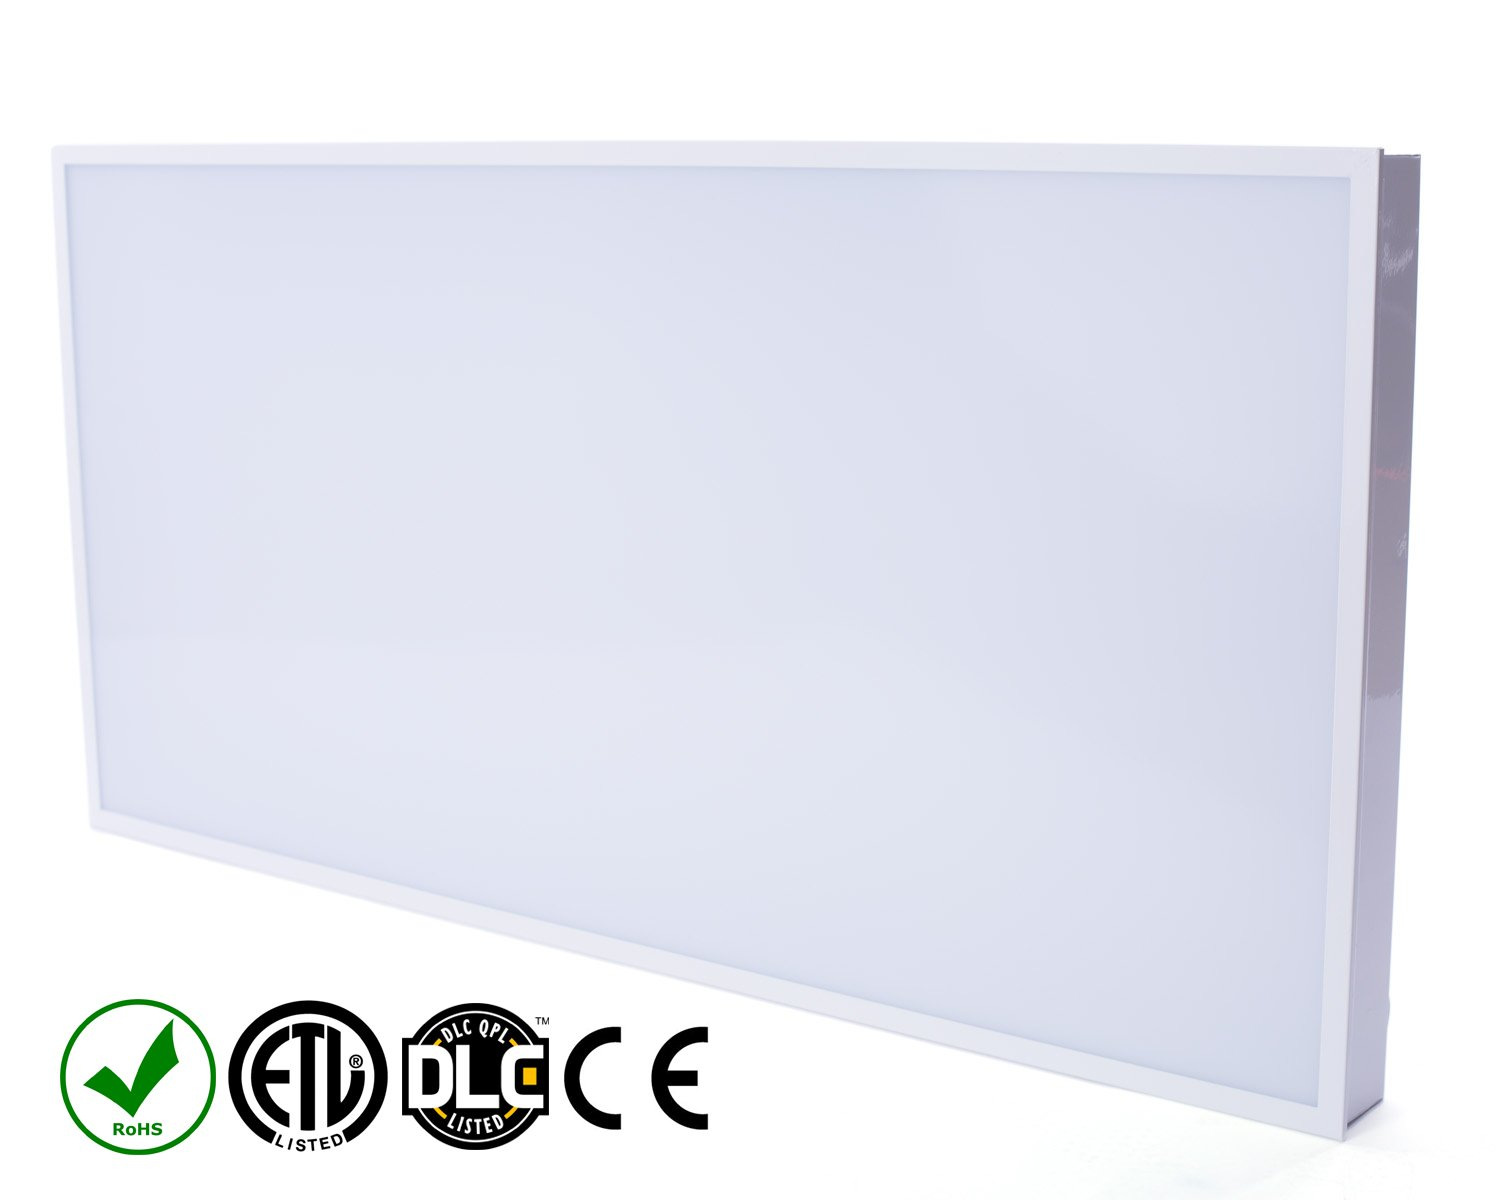 hot sale online f9110 0c8f4 Fovitec StudioPRO Office Industrial Home Energy Saving LED Light Panel  Fixture Ultra Thin Bright Backlit 5500K 40W - 2 x 4 feet